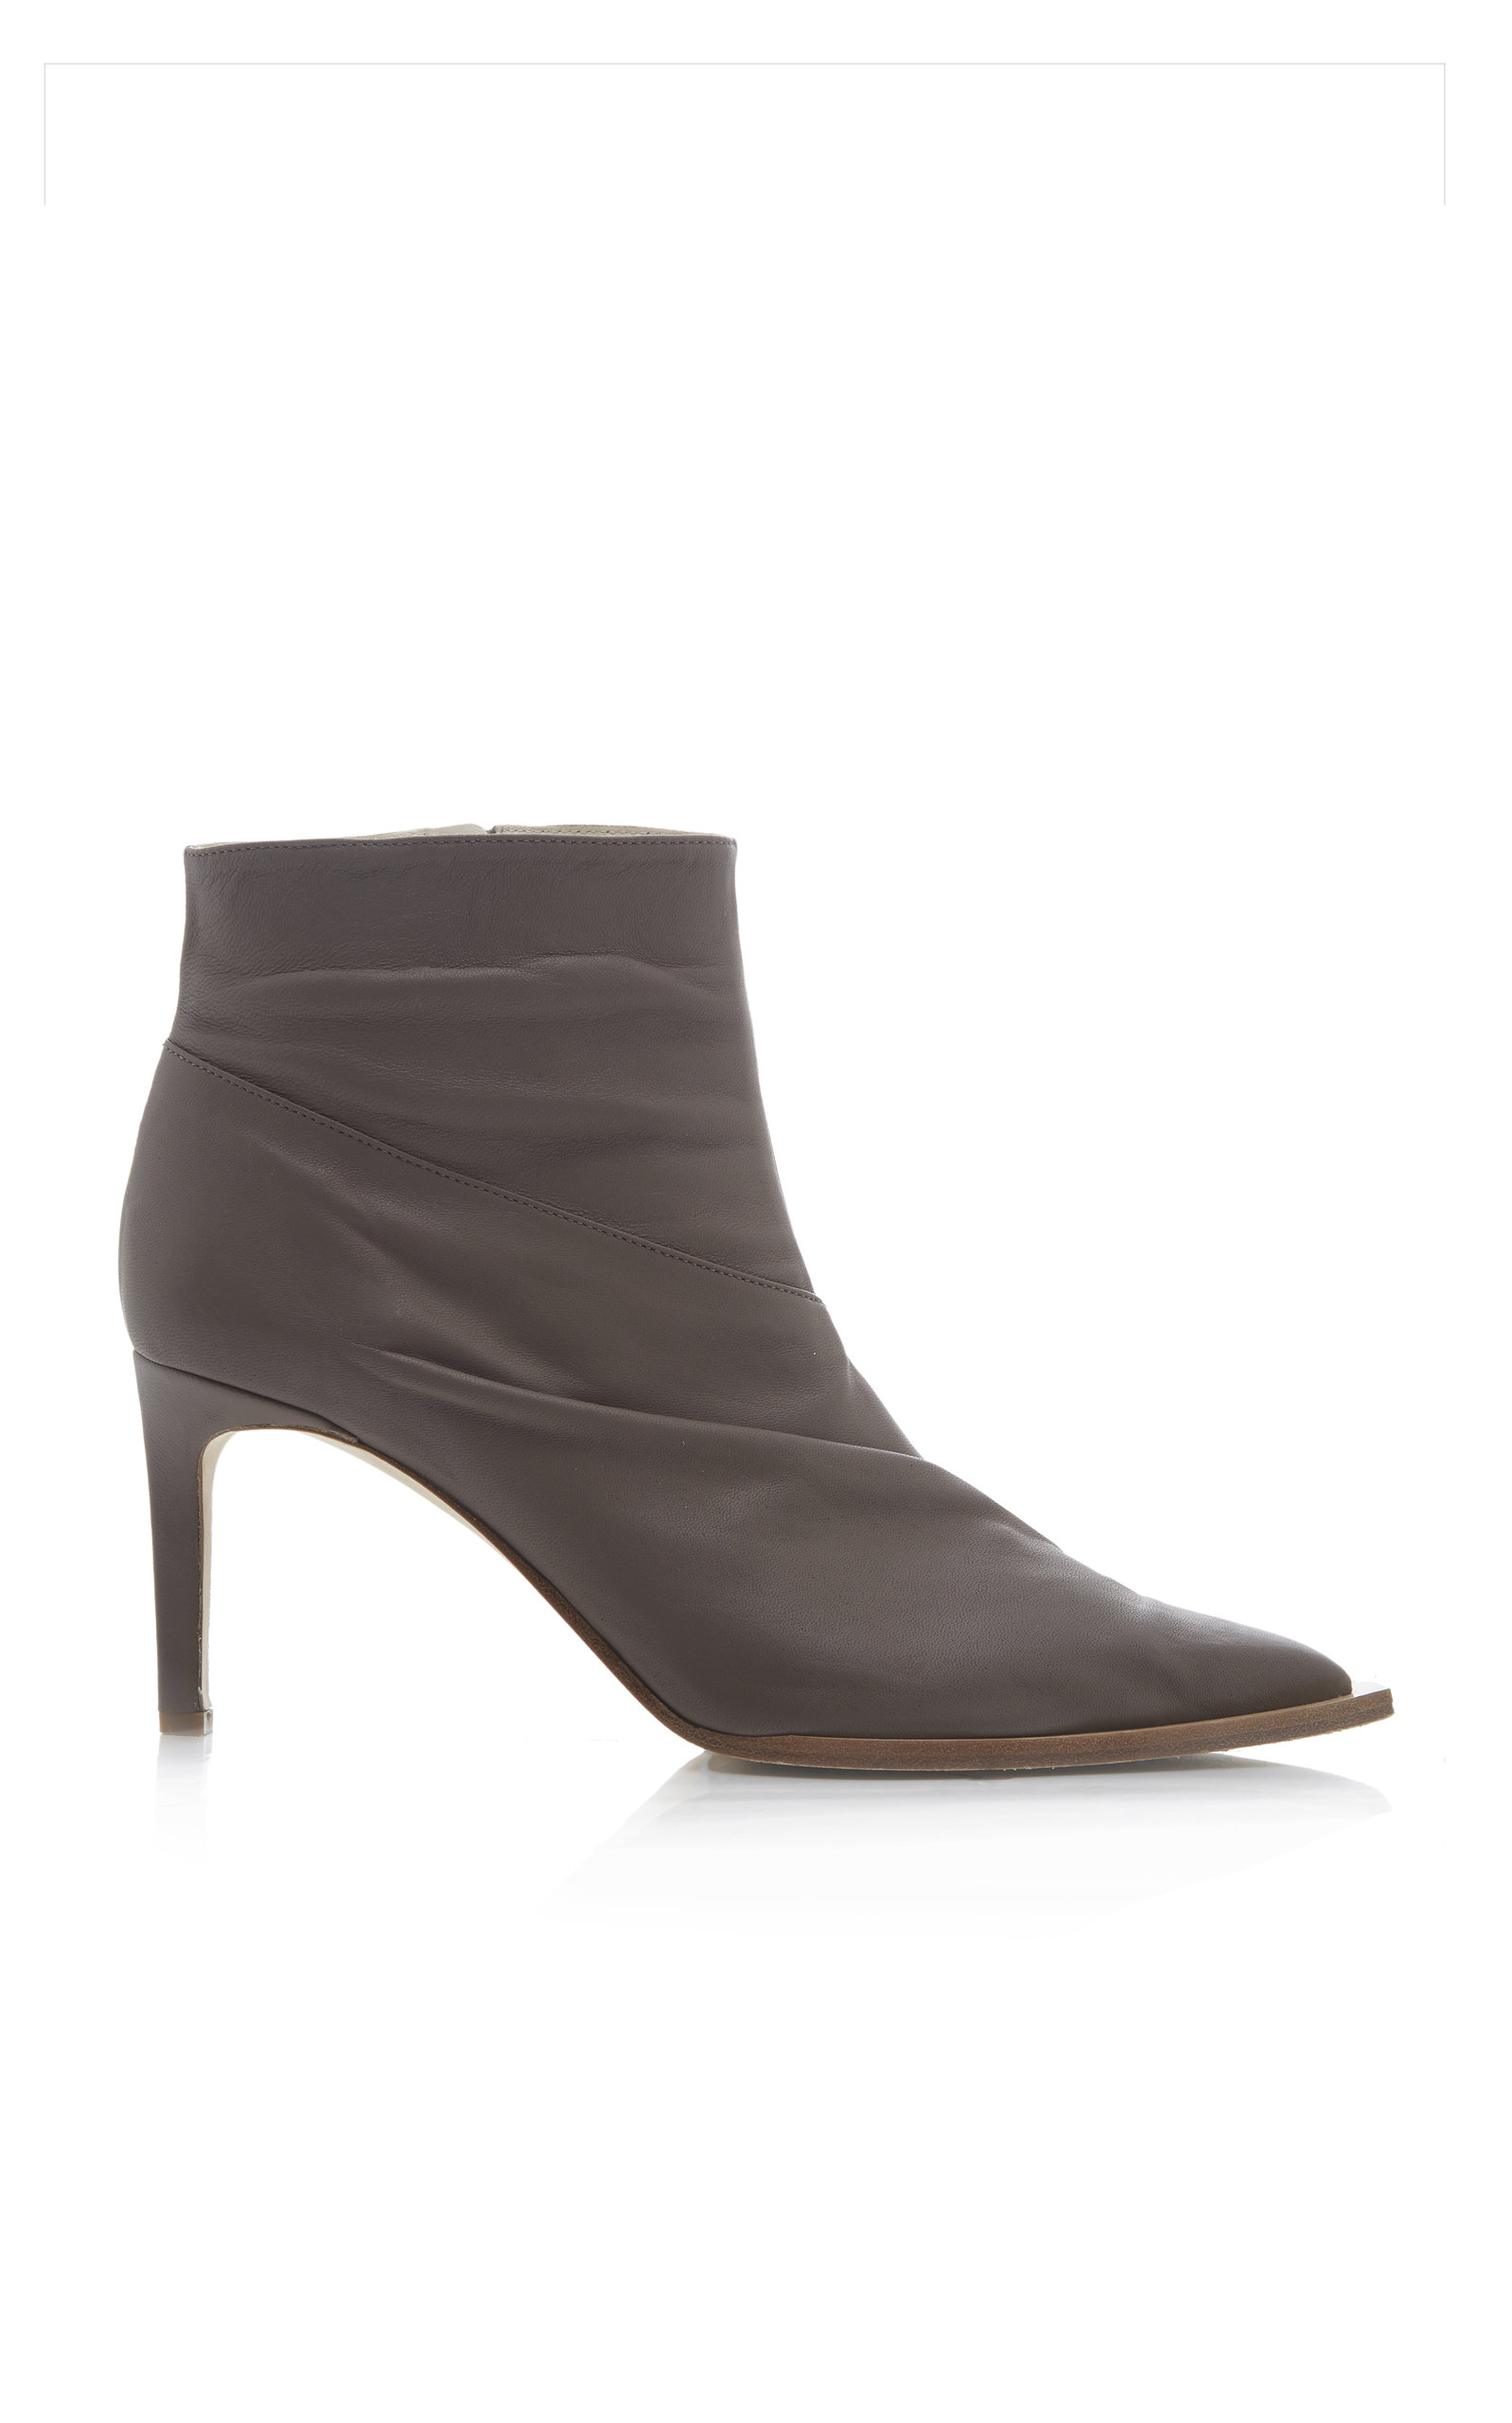 dc012598765 TibiCato Ankle Boots. CLOSE. Loading